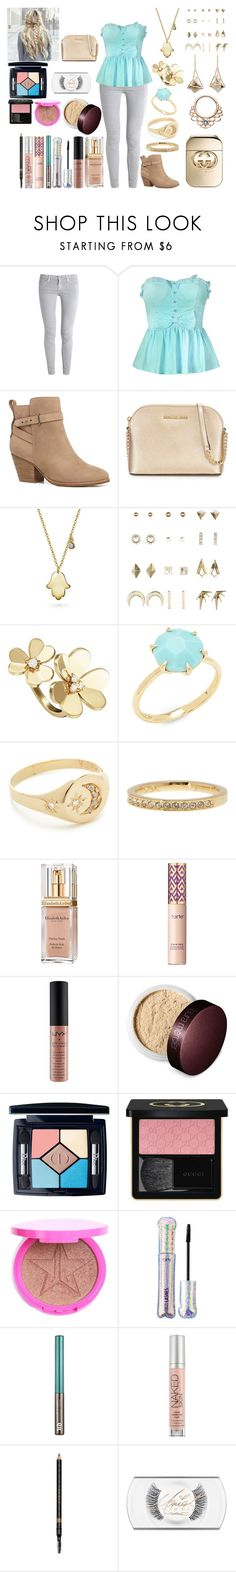 """""""Untitled #884"""" by asiebenthaler ❤ liked on Polyvore featuring AG Adriano Goldschmied, Witchery, MICHAEL Michael Kors, Bling Jewelry, Charlotte Russe, Van Cleef & Arpels, Ippolita, Jacquie Aiche, Swarovski and Elizabeth Arden"""